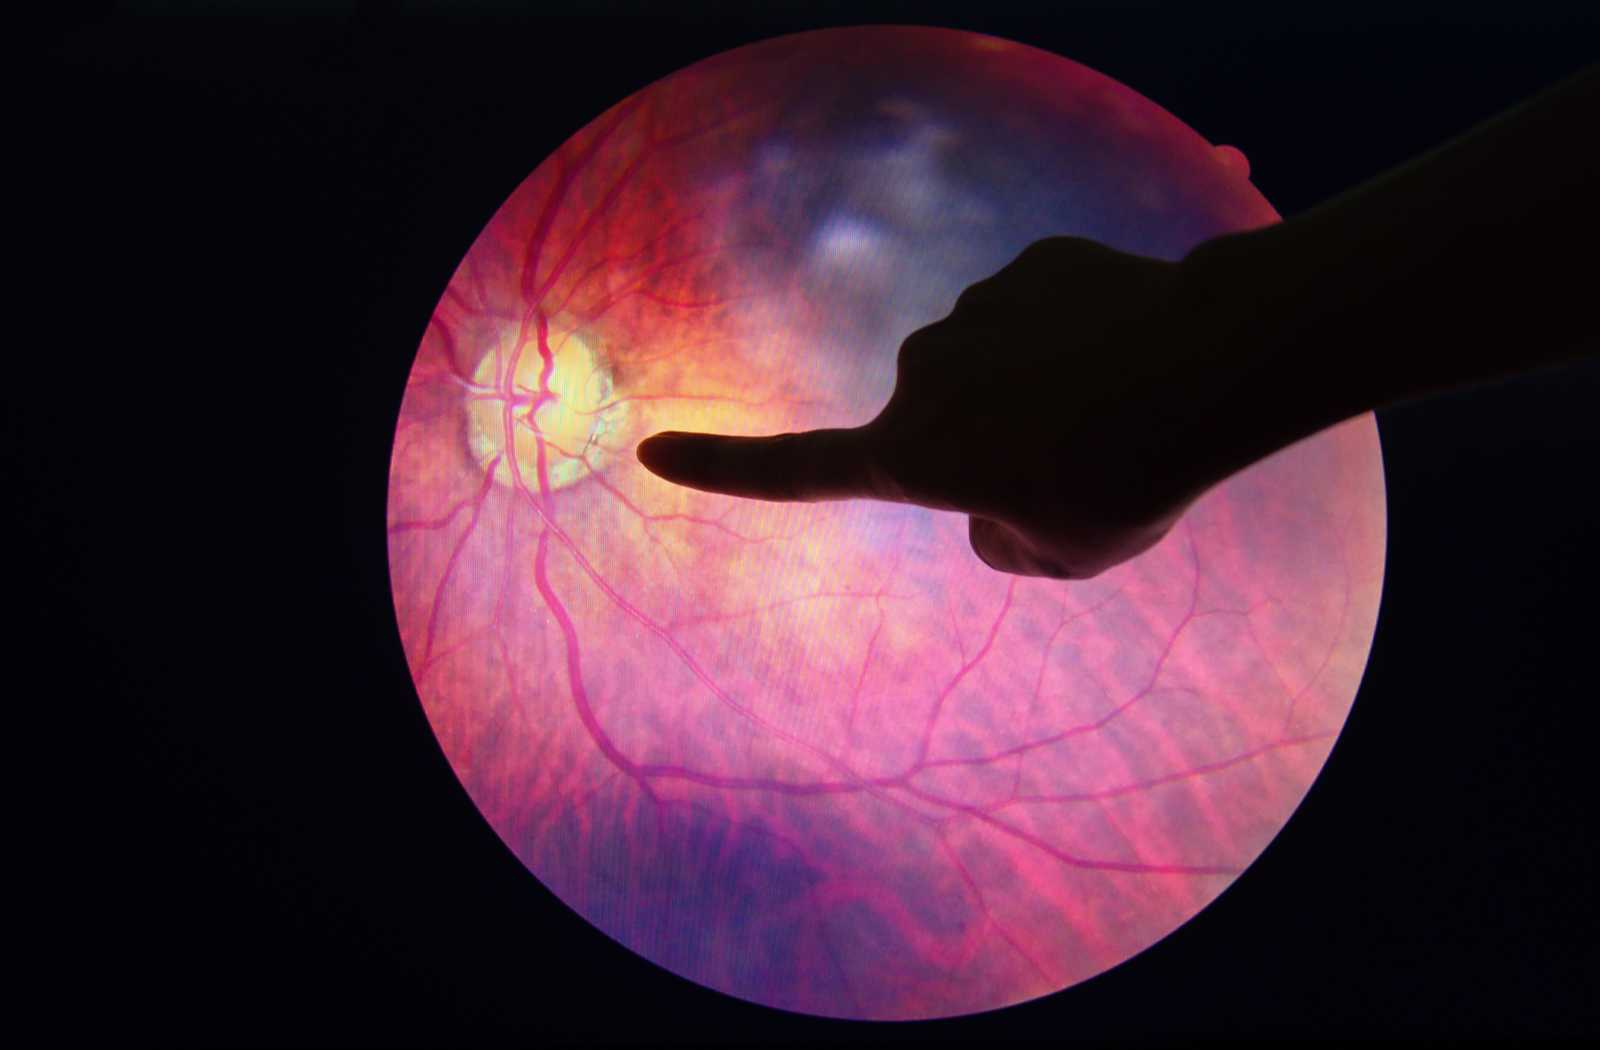 diabetic eye condition on retinal imaging display with black background